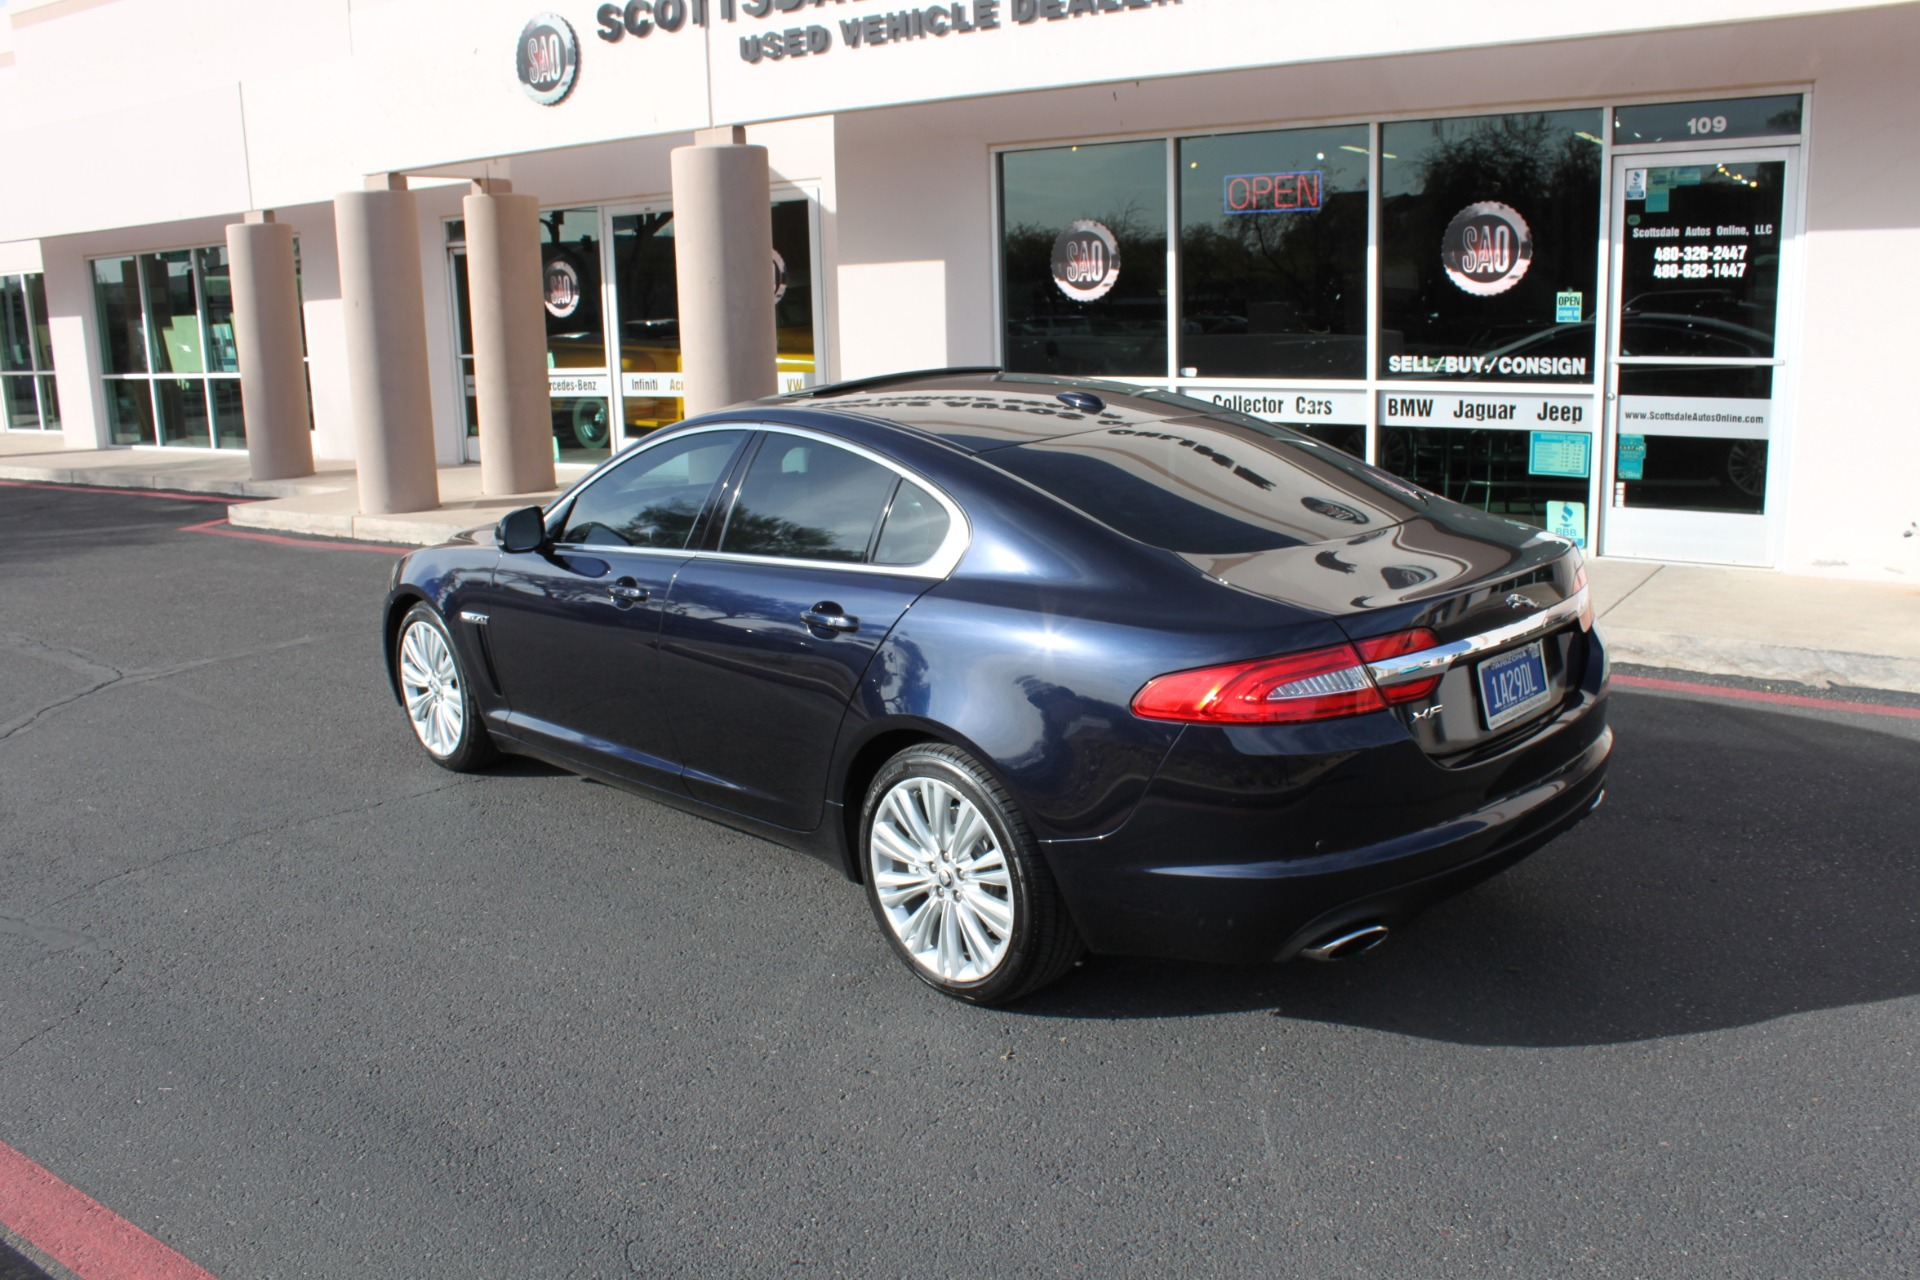 Used-2012-Jaguar-XF-Portfolio-Dodge